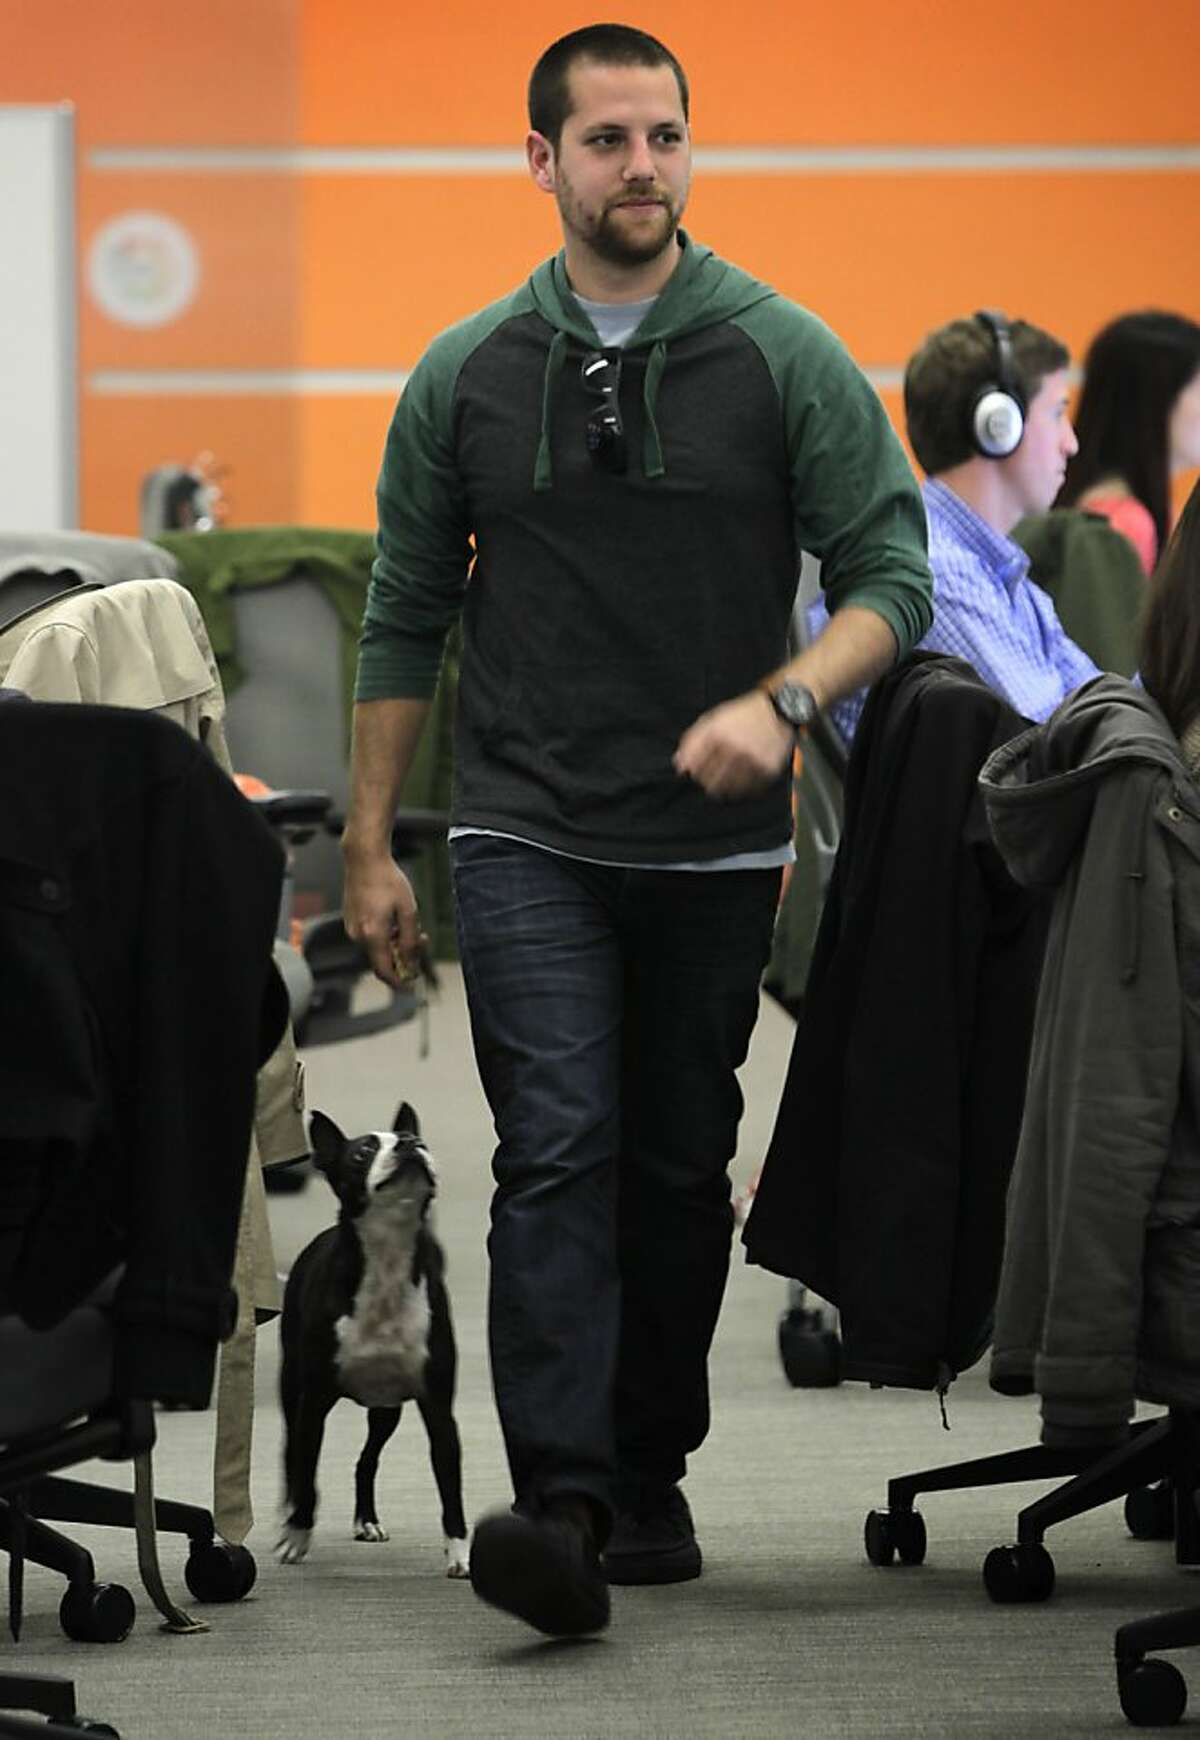 Jared Surasky walks with his Boston terrier Boogie while on the job at his dog-friendly workplace at Eventbrite in San Francisco, Calif. on Thursday, April 11, 2013. Surasky has used rover.com, an online dog-sitting service to find homes for Boogie to stay in when Surasky travels out of town.